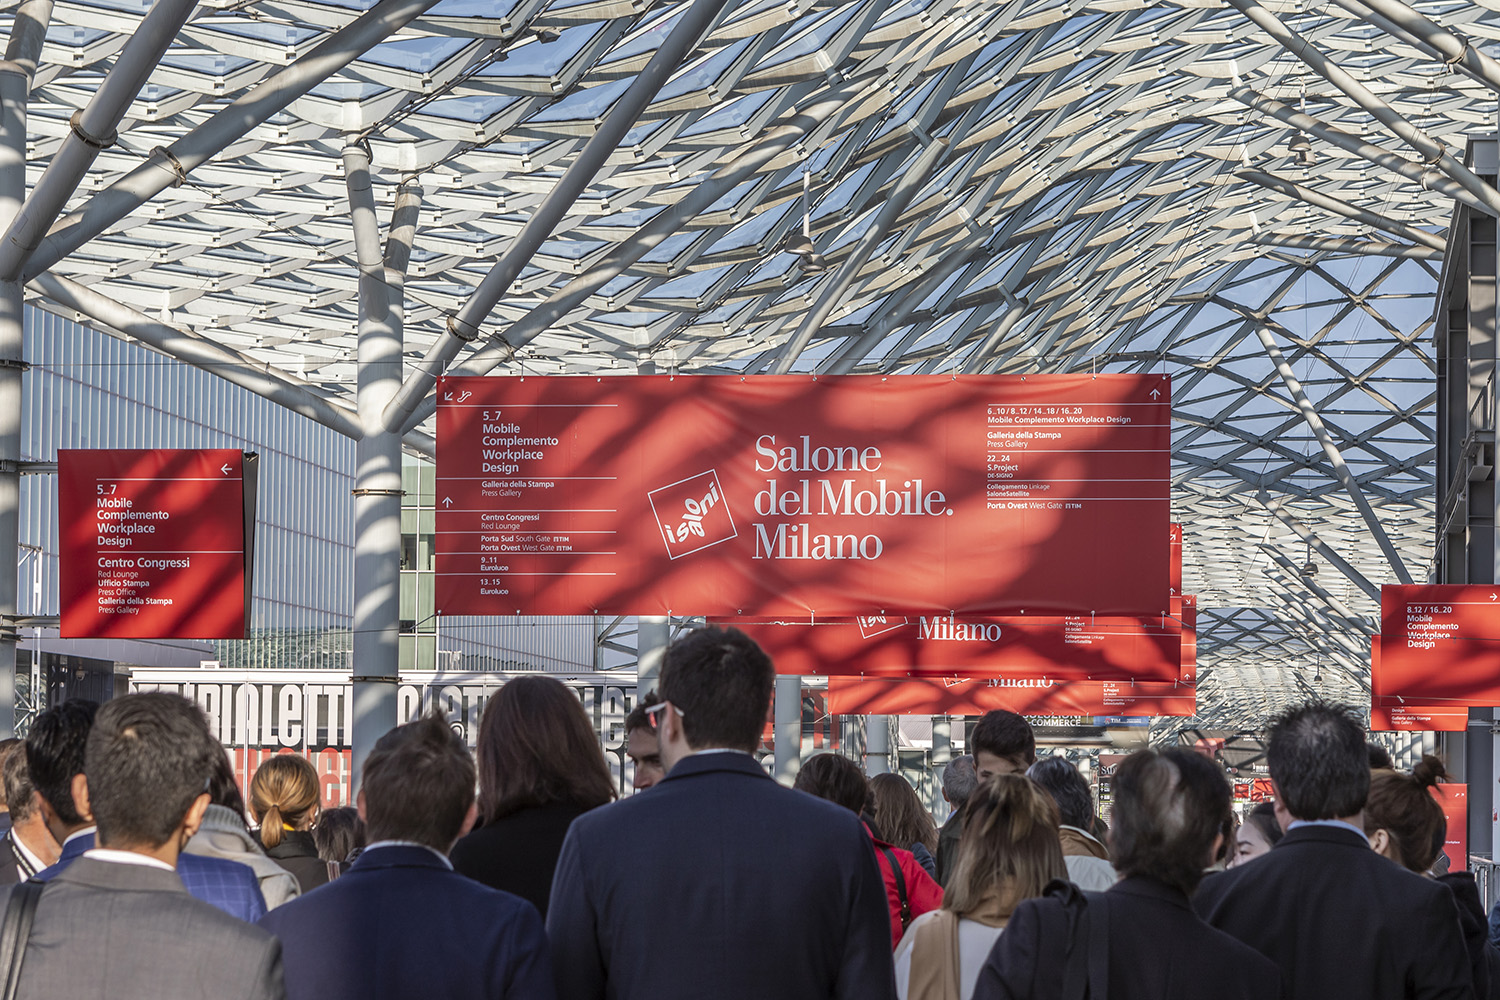 Interior photo of a festival with a red Salone del Mobile banner